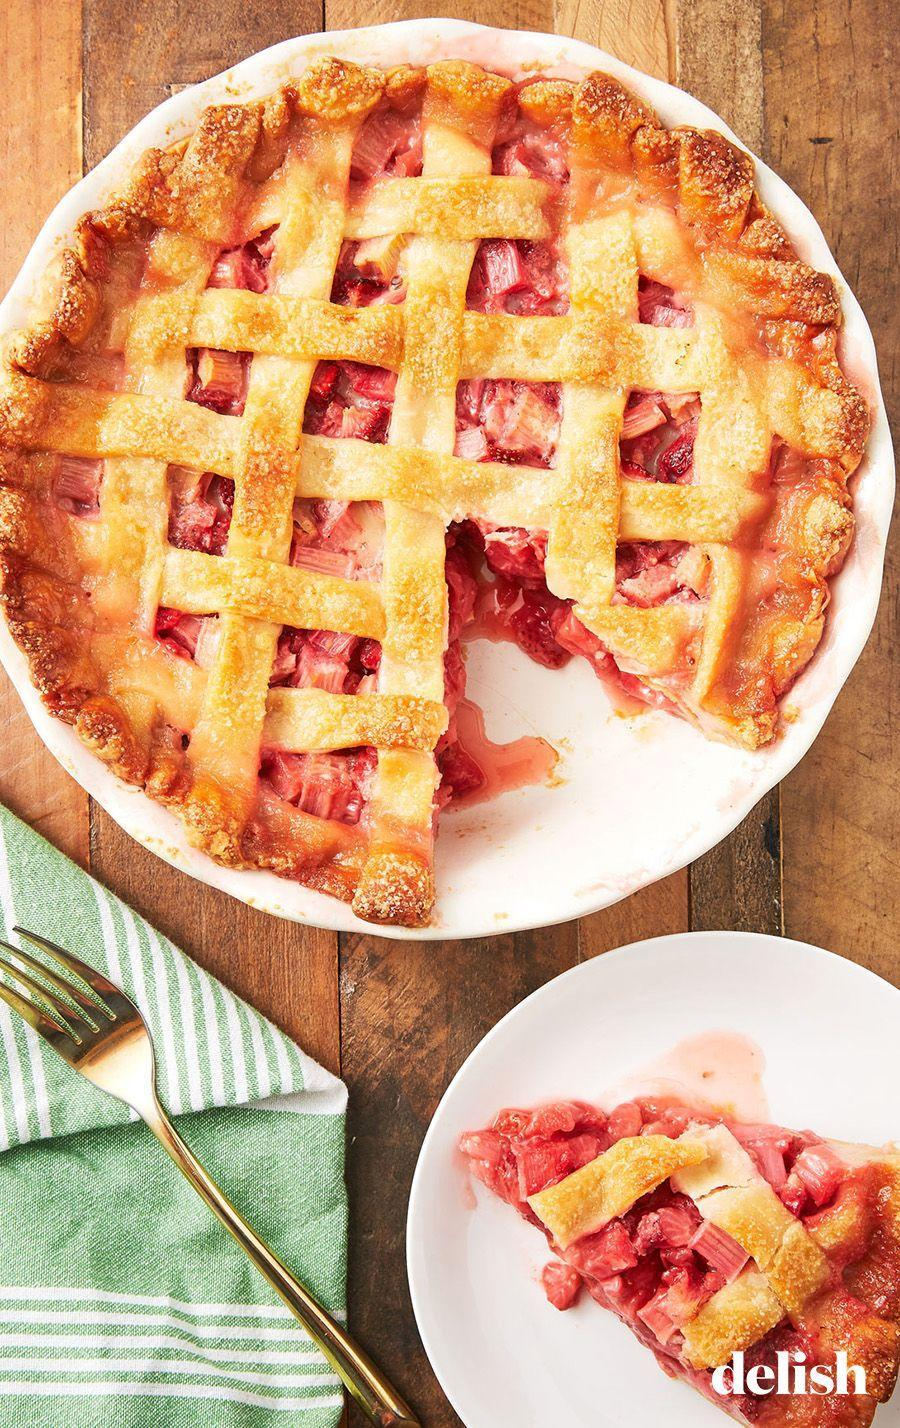 """<p>Celebrate spring with this delicious, tart and sweet pie.</p><p>Get the recipe from <a href=""""https://www.delish.com/cooking/recipe-ideas/recipes/a53154/best-strawberry-rhubarb-pie-recipe/"""" rel=""""nofollow noopener"""" target=""""_blank"""" data-ylk=""""slk:Delish"""" class=""""link rapid-noclick-resp"""">Delish</a>.</p>"""